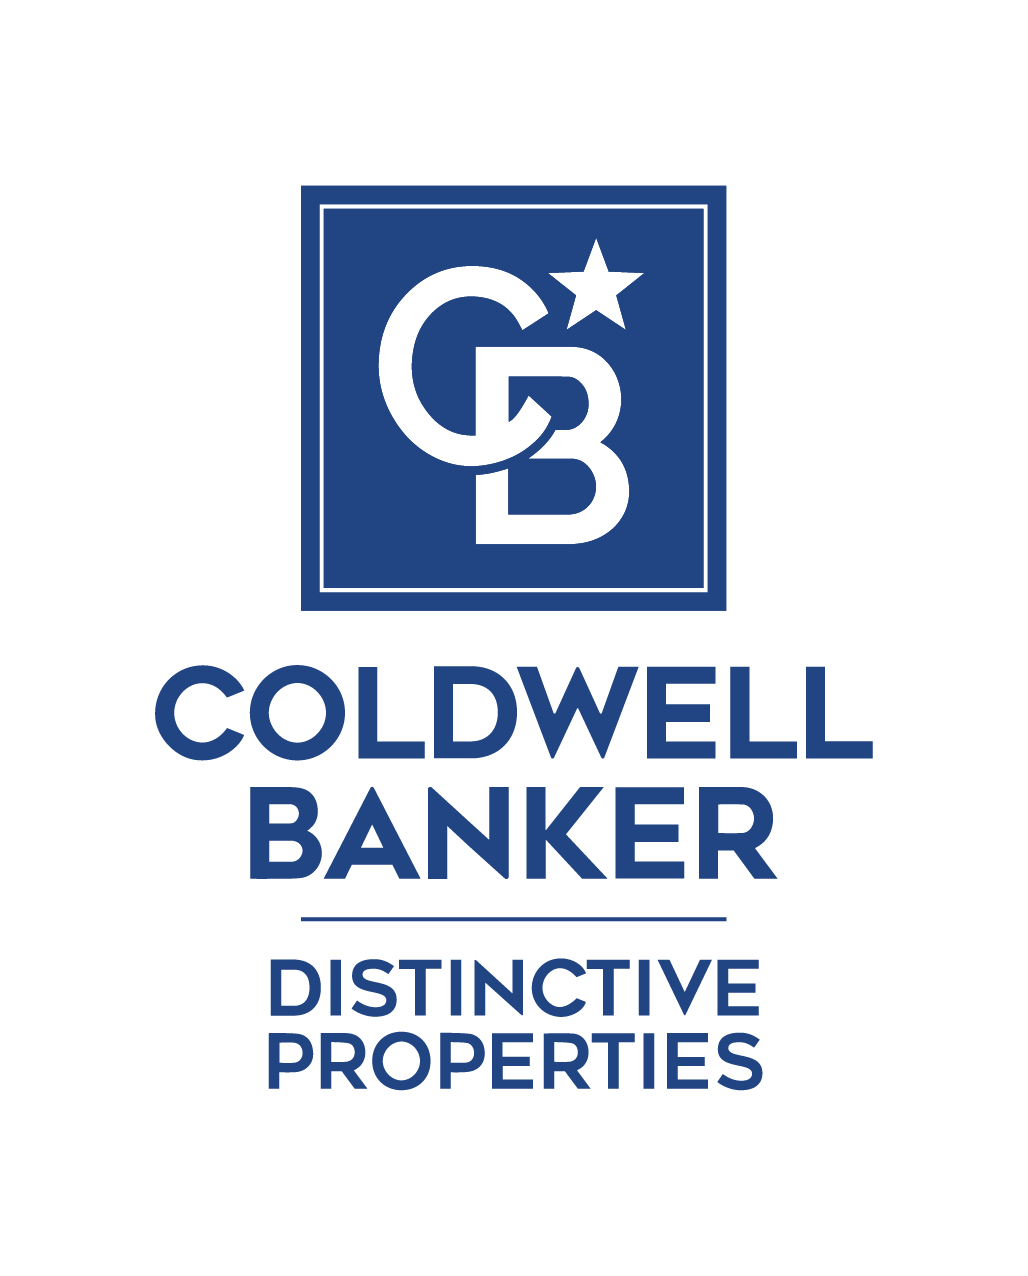 Johnny Brokaw - Coldwell Banker Distinctive Properties